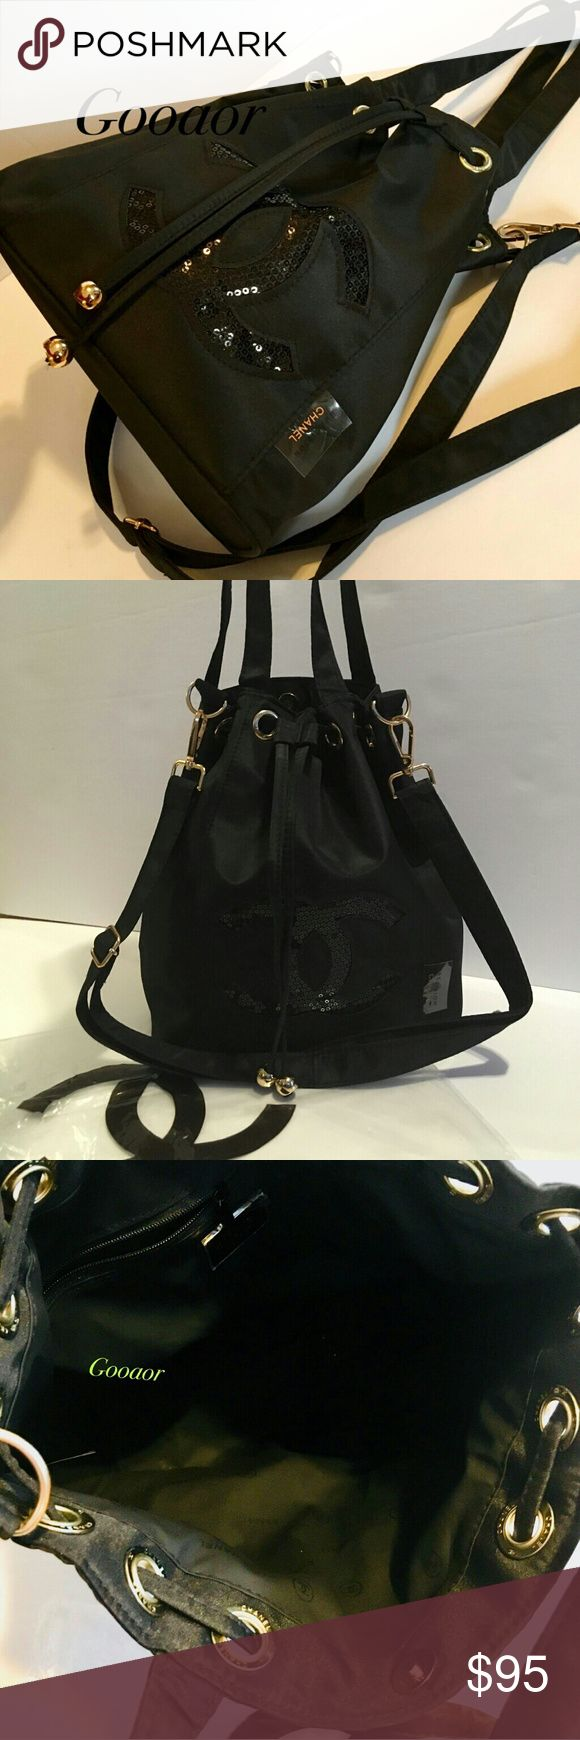 Authentic vip gift precision bucket shoulder bag Chanel